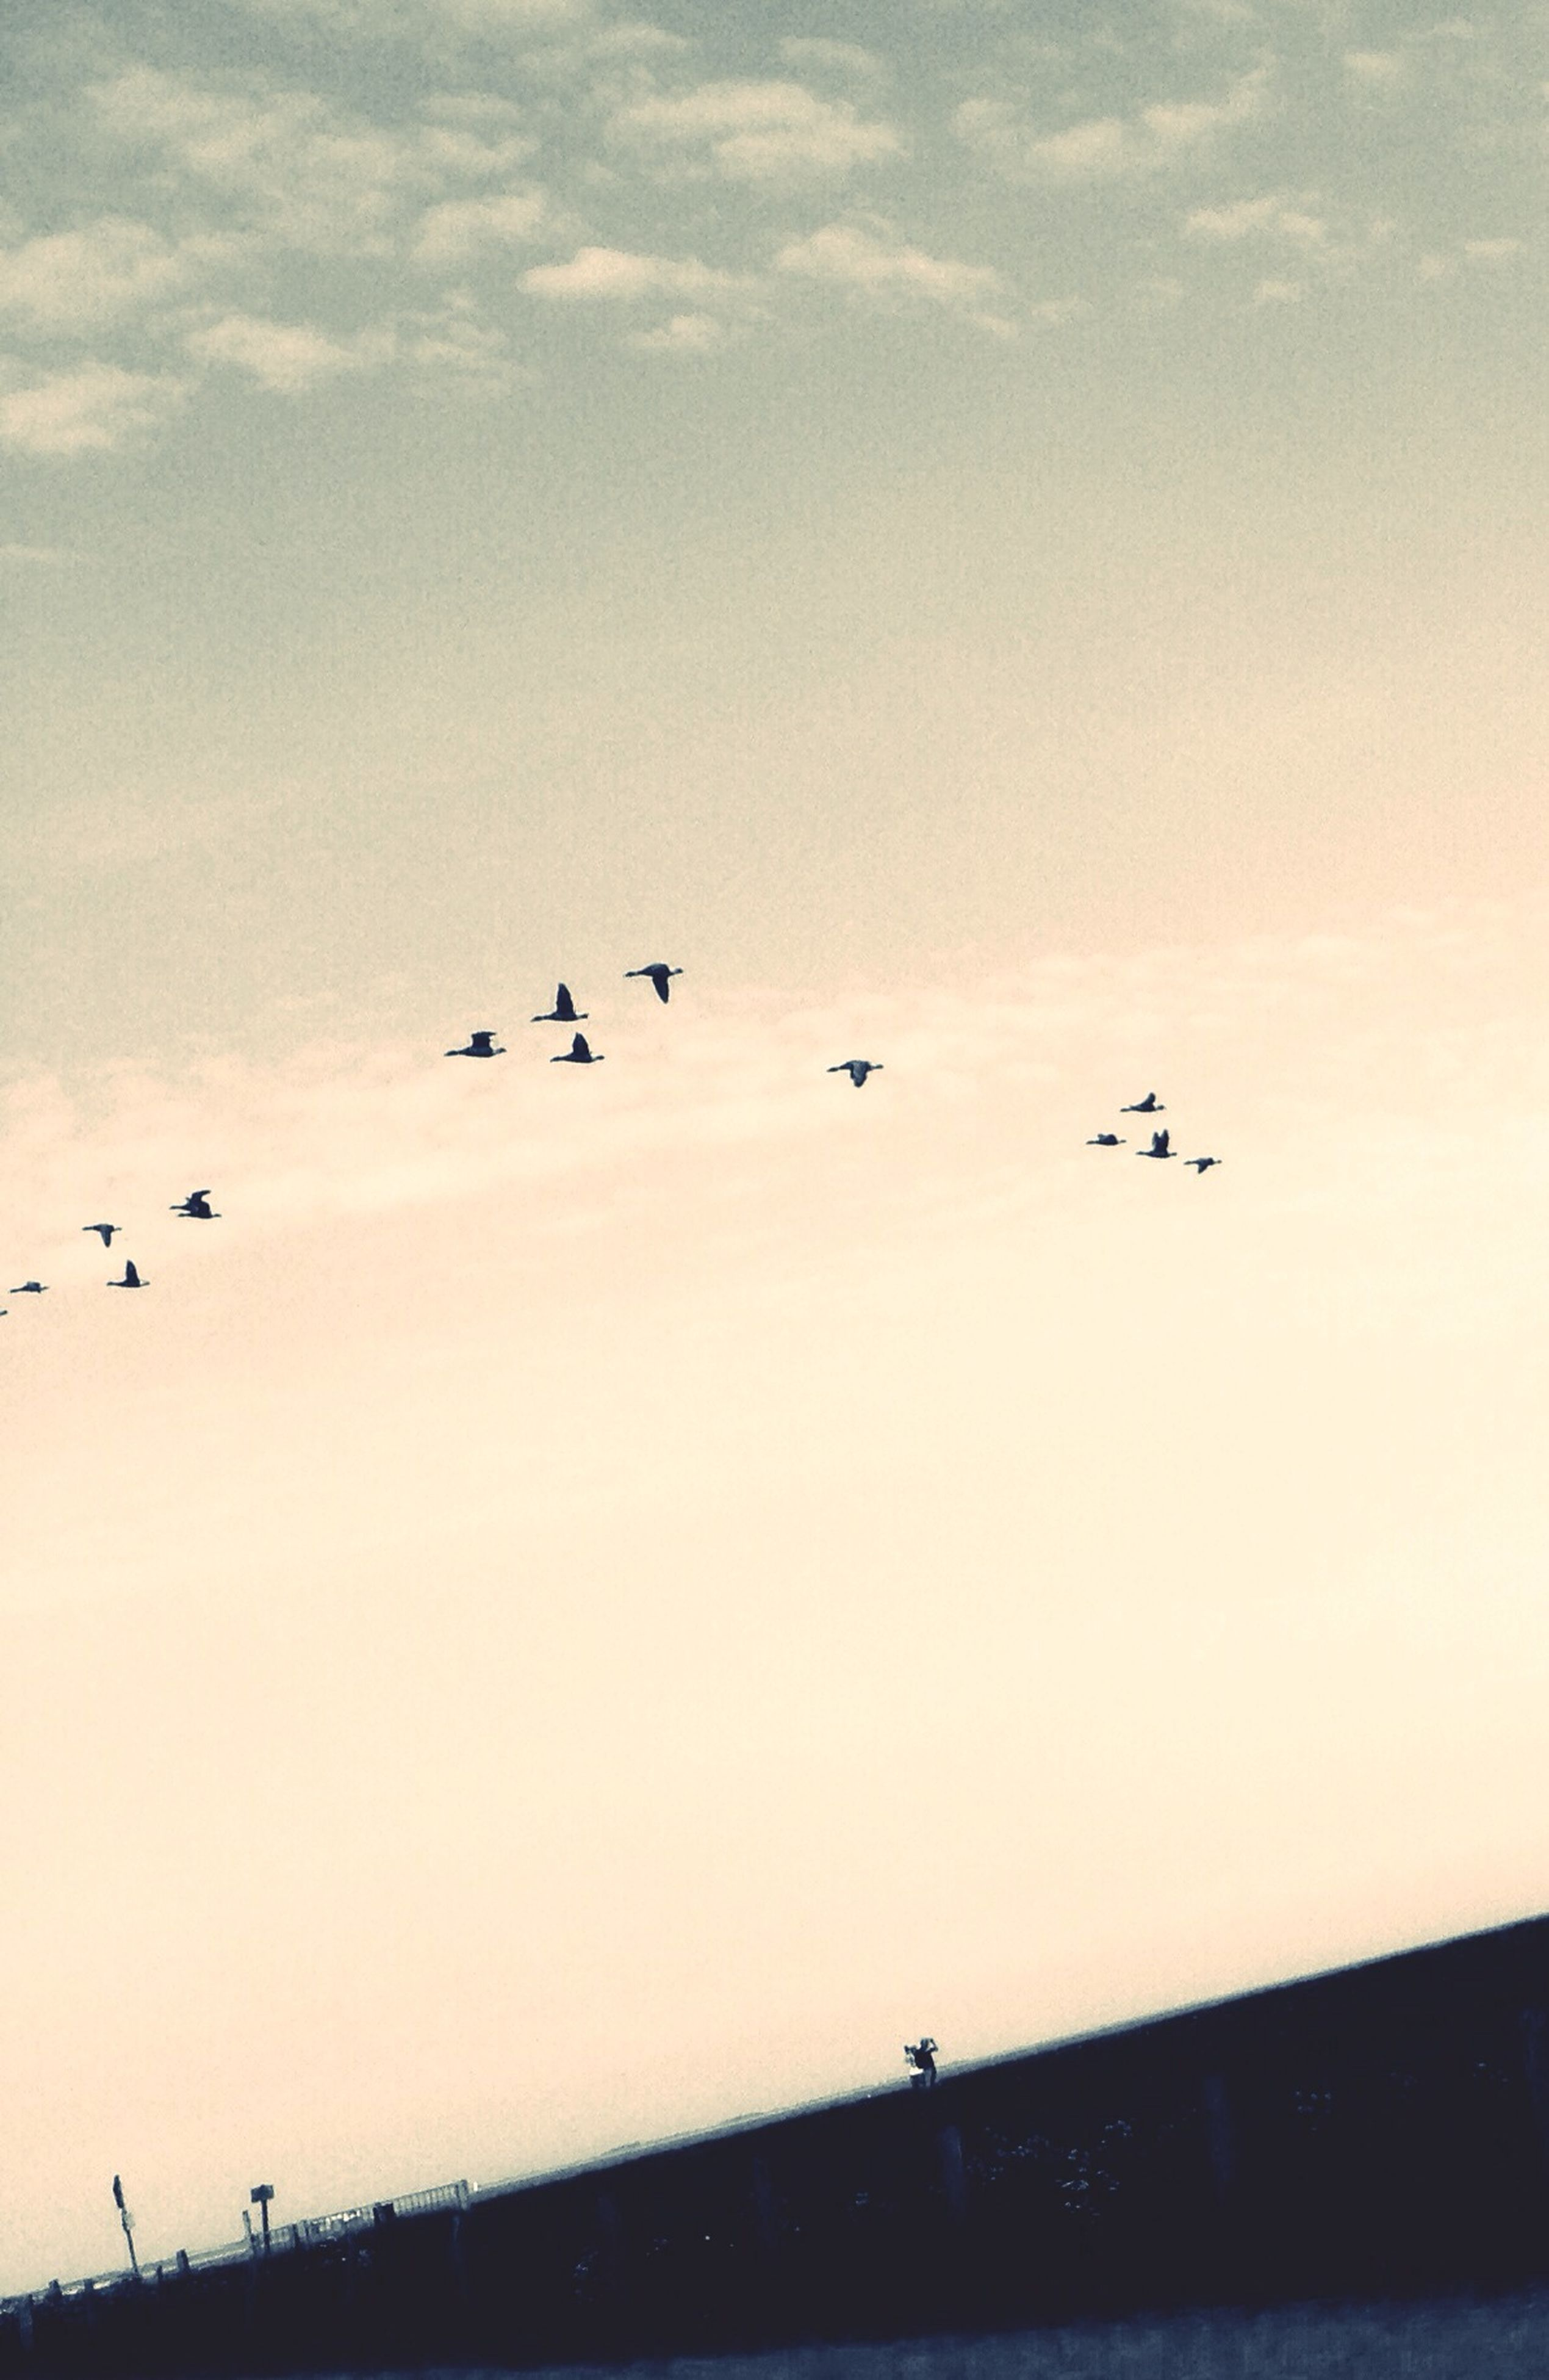 bird, flying, animal themes, animals in the wild, flock of birds, wildlife, silhouette, sky, mid-air, medium group of animals, low angle view, sunset, nature, transportation, beauty in nature, outdoors, built structure, scenics, cloud - sky